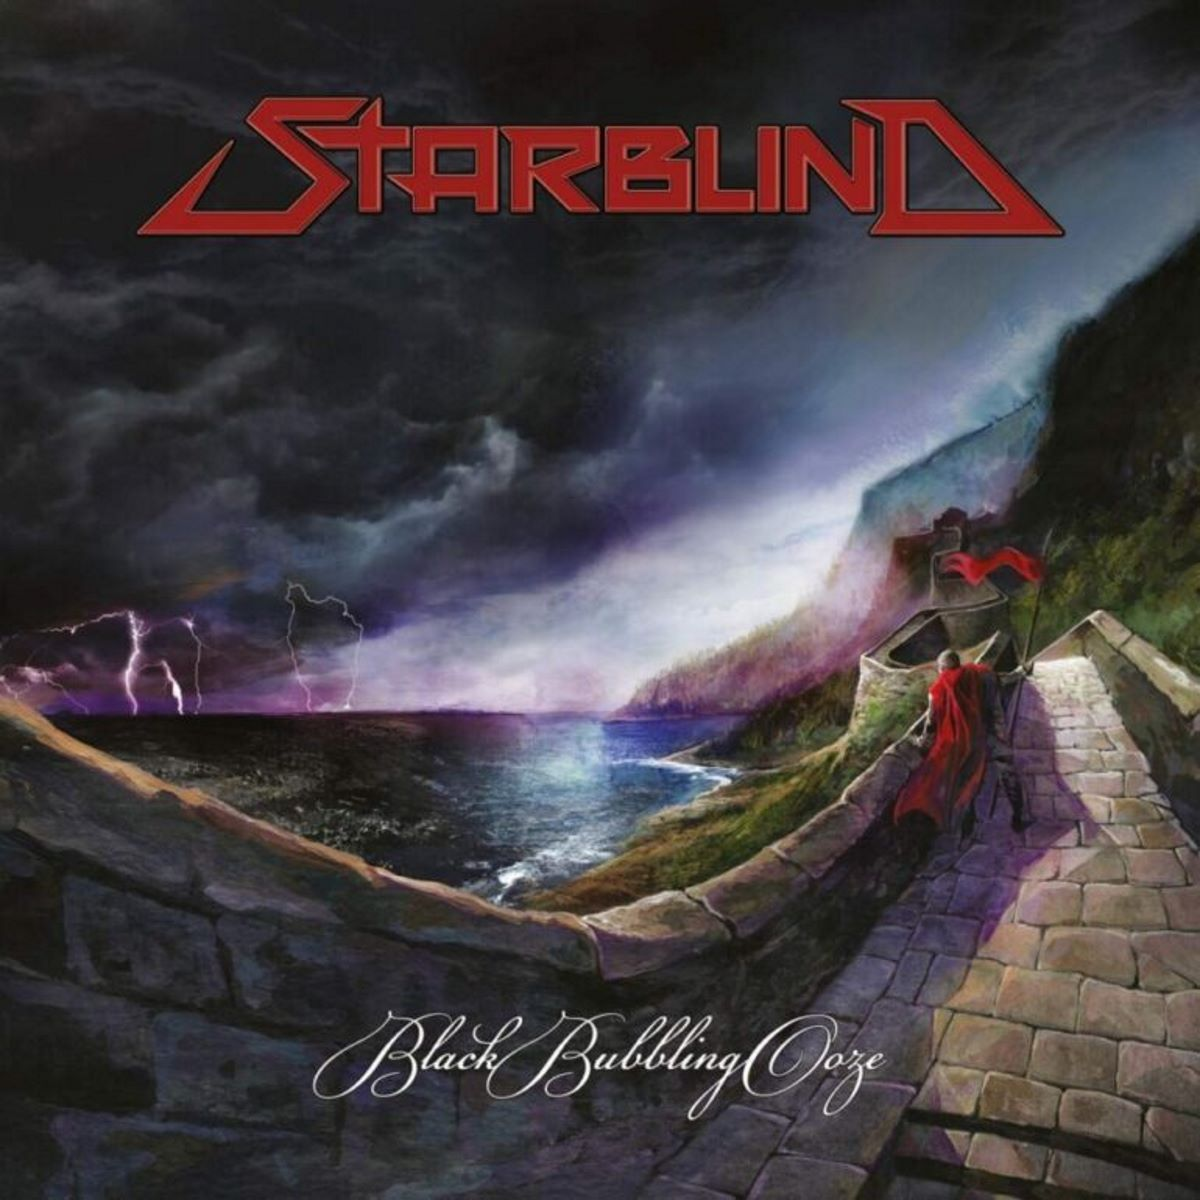 Starblind - Black Bubbling Ooze - album cover